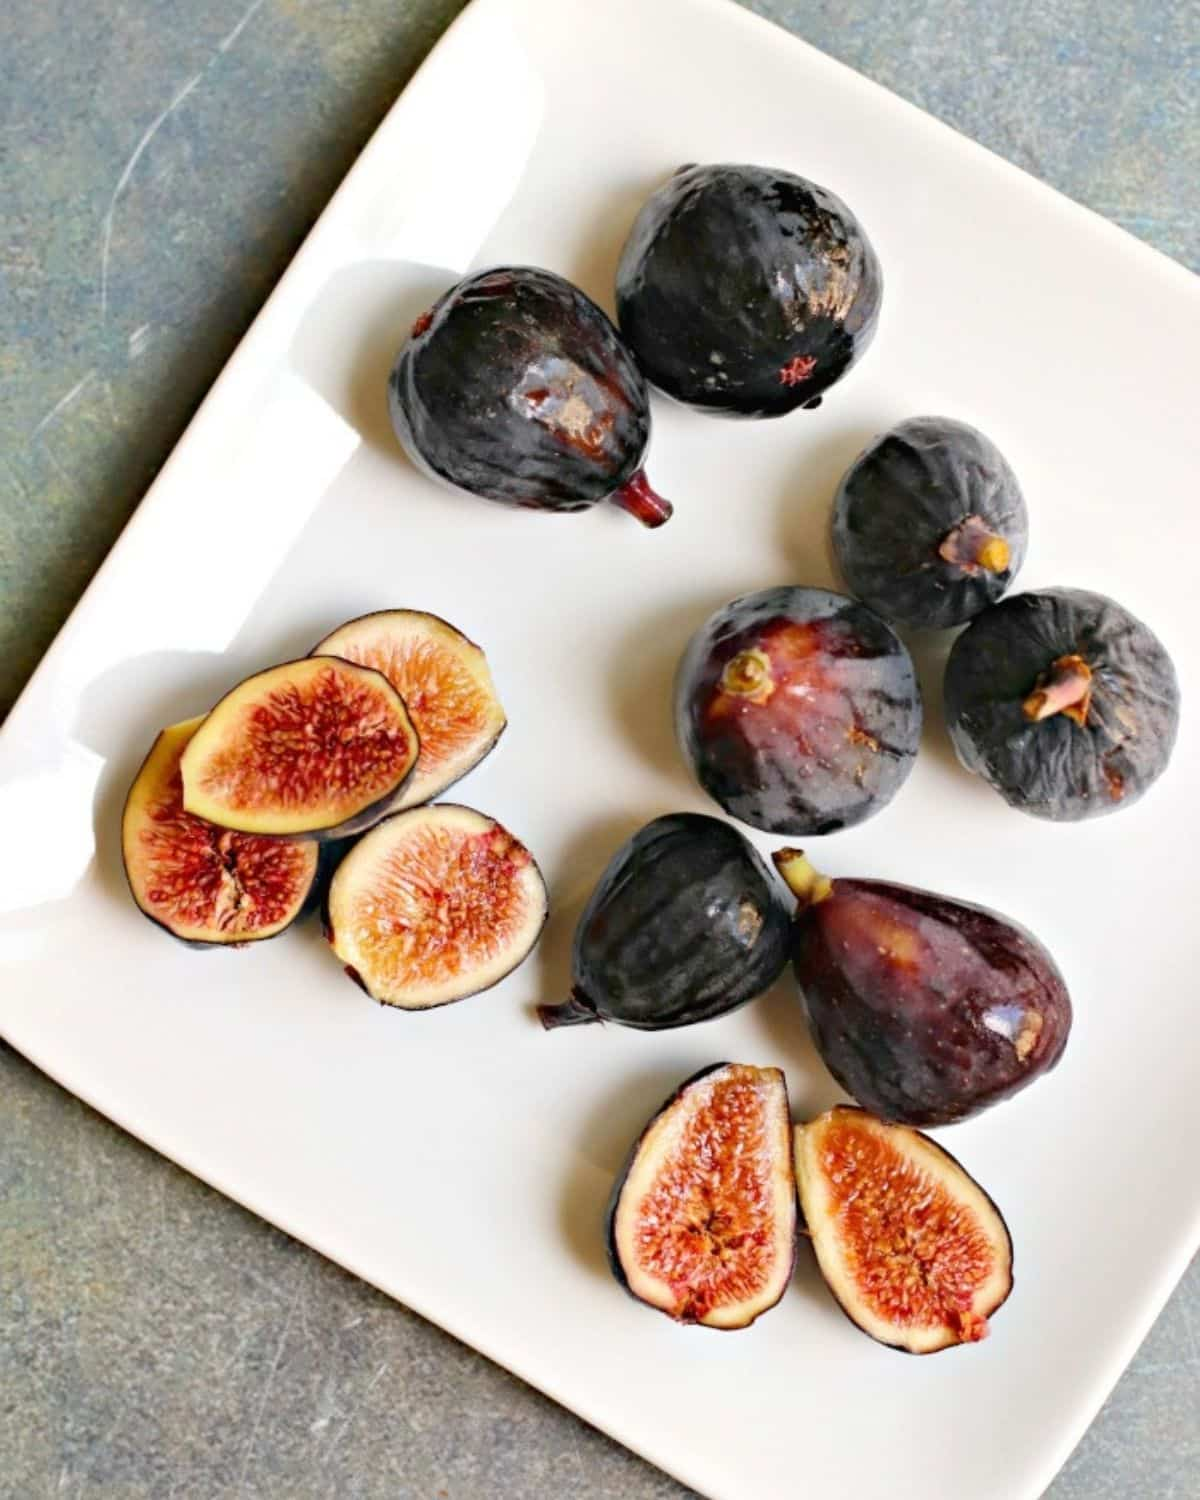 Plate of fresh figs with some of them sliced open